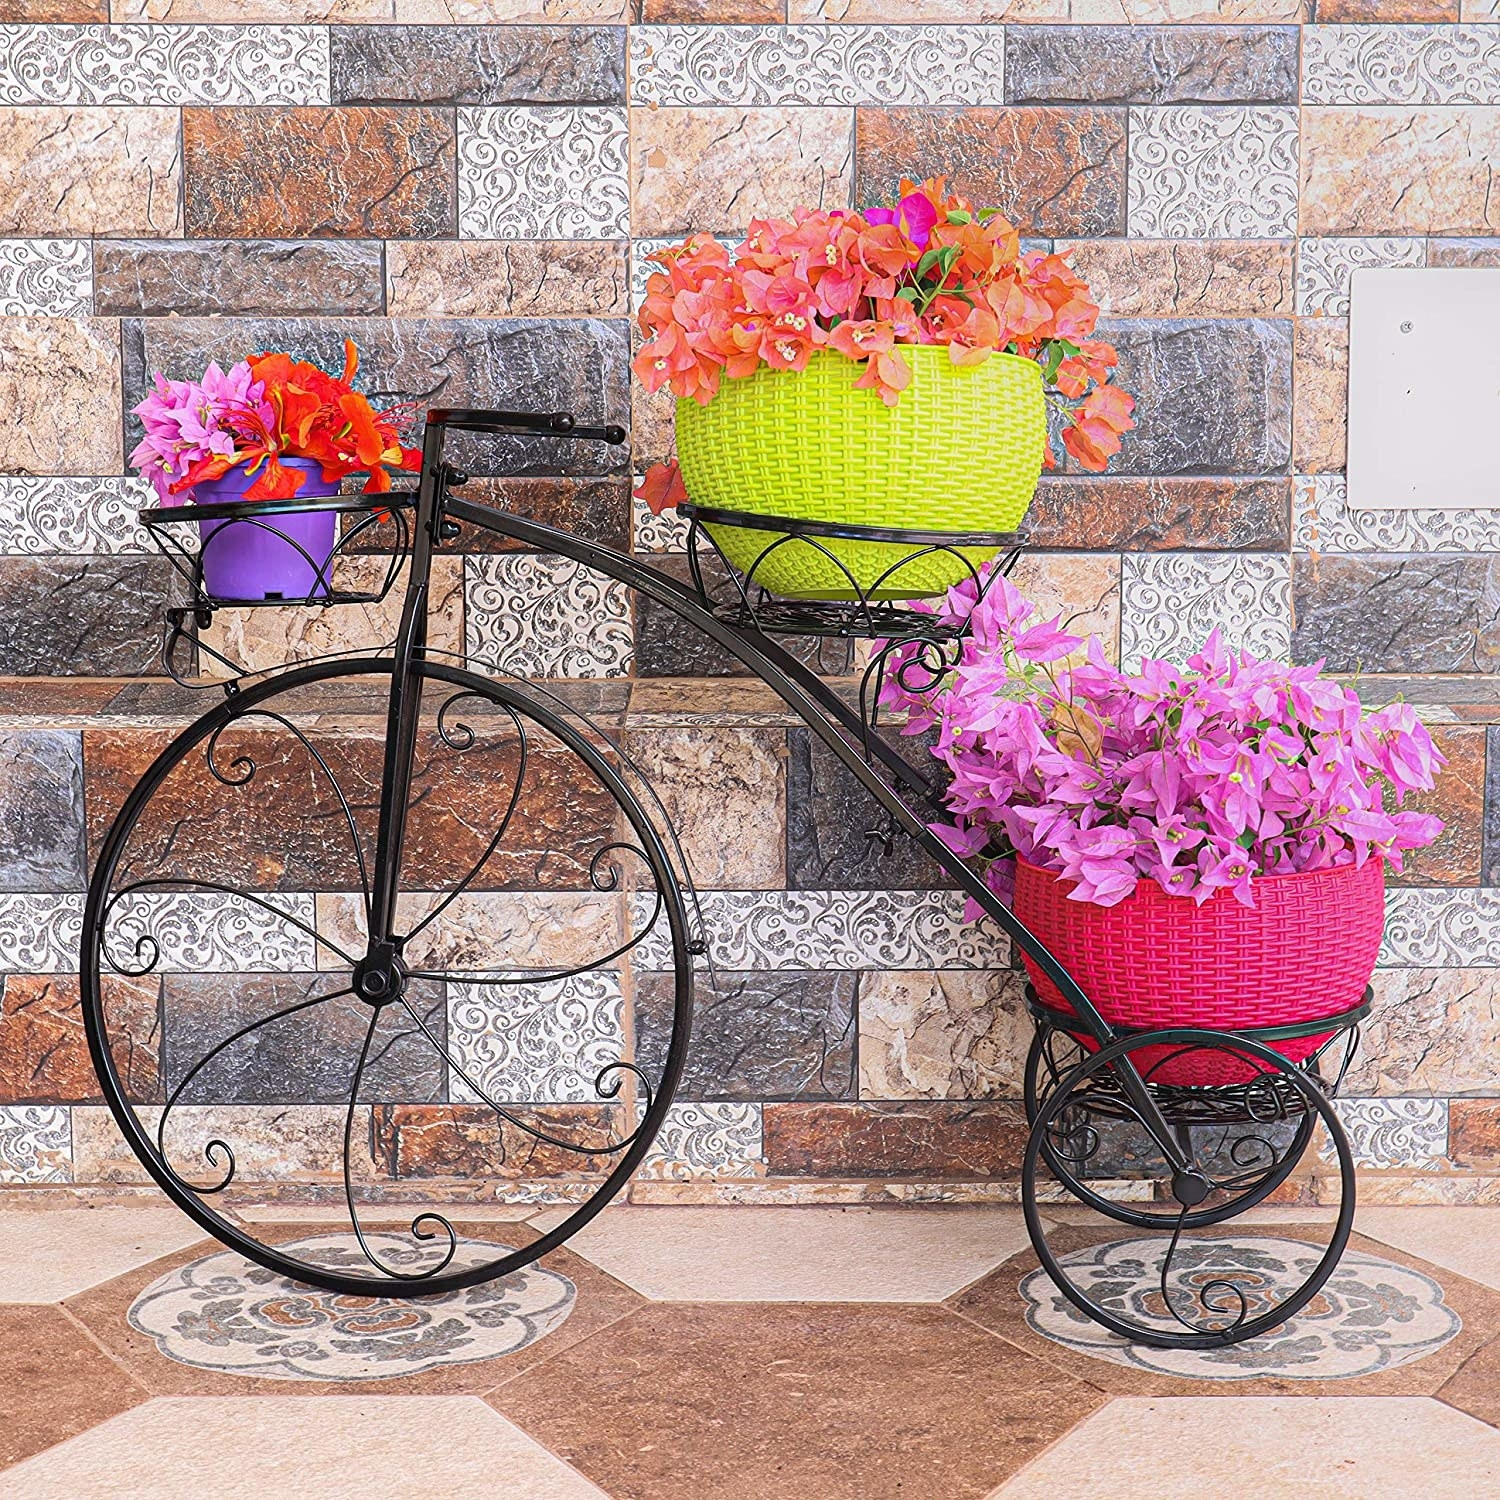 a wrought iron plant stand holding flowering planters.